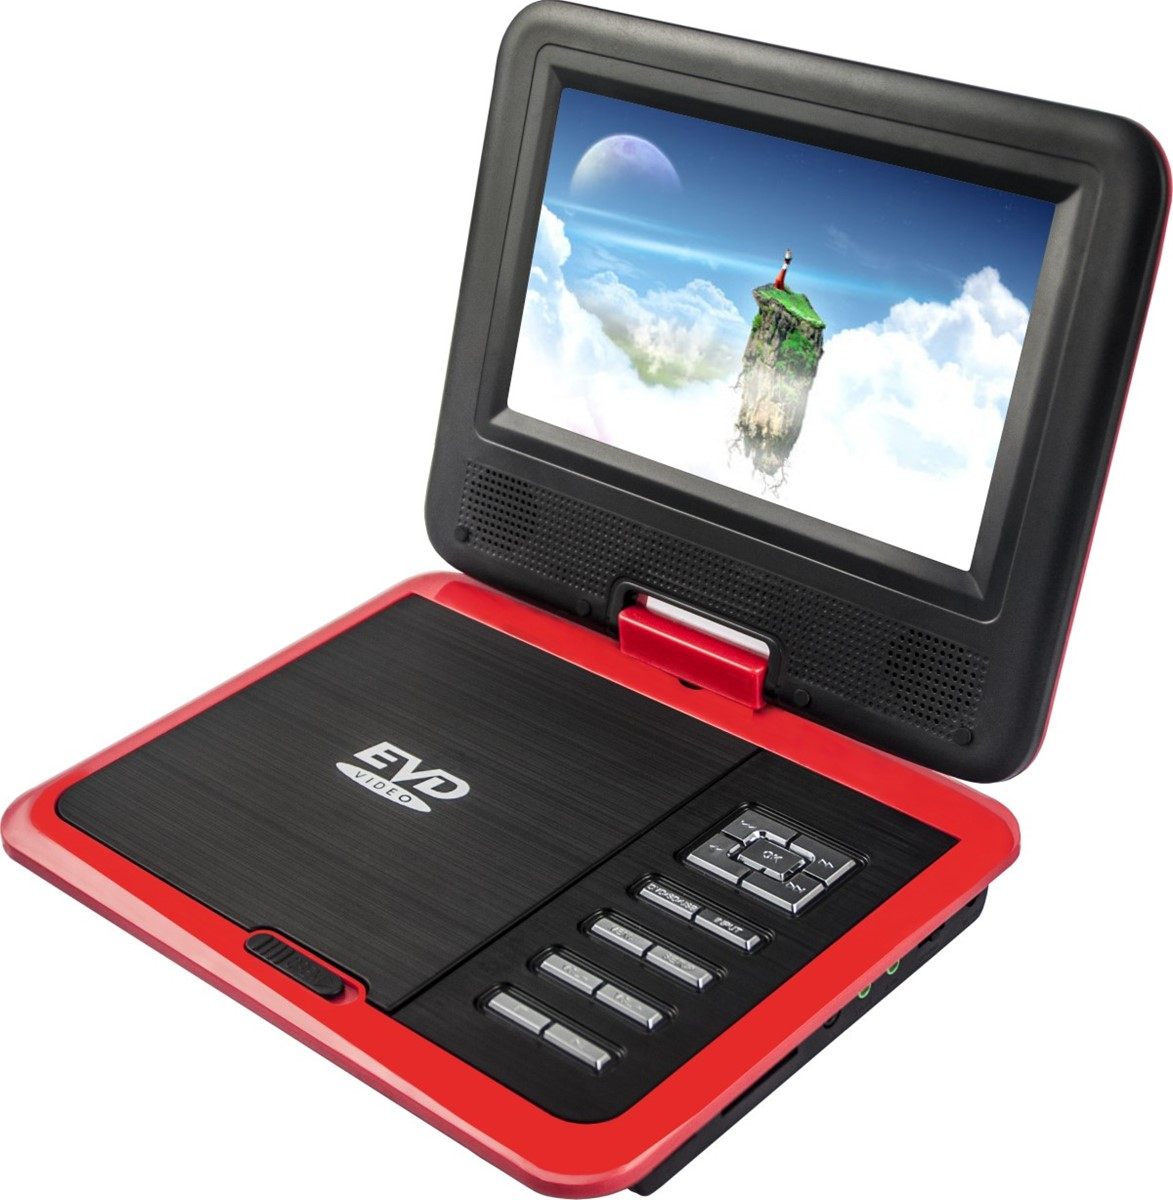 factory price mini dvd portable dvd player purchasing. Black Bedroom Furniture Sets. Home Design Ideas